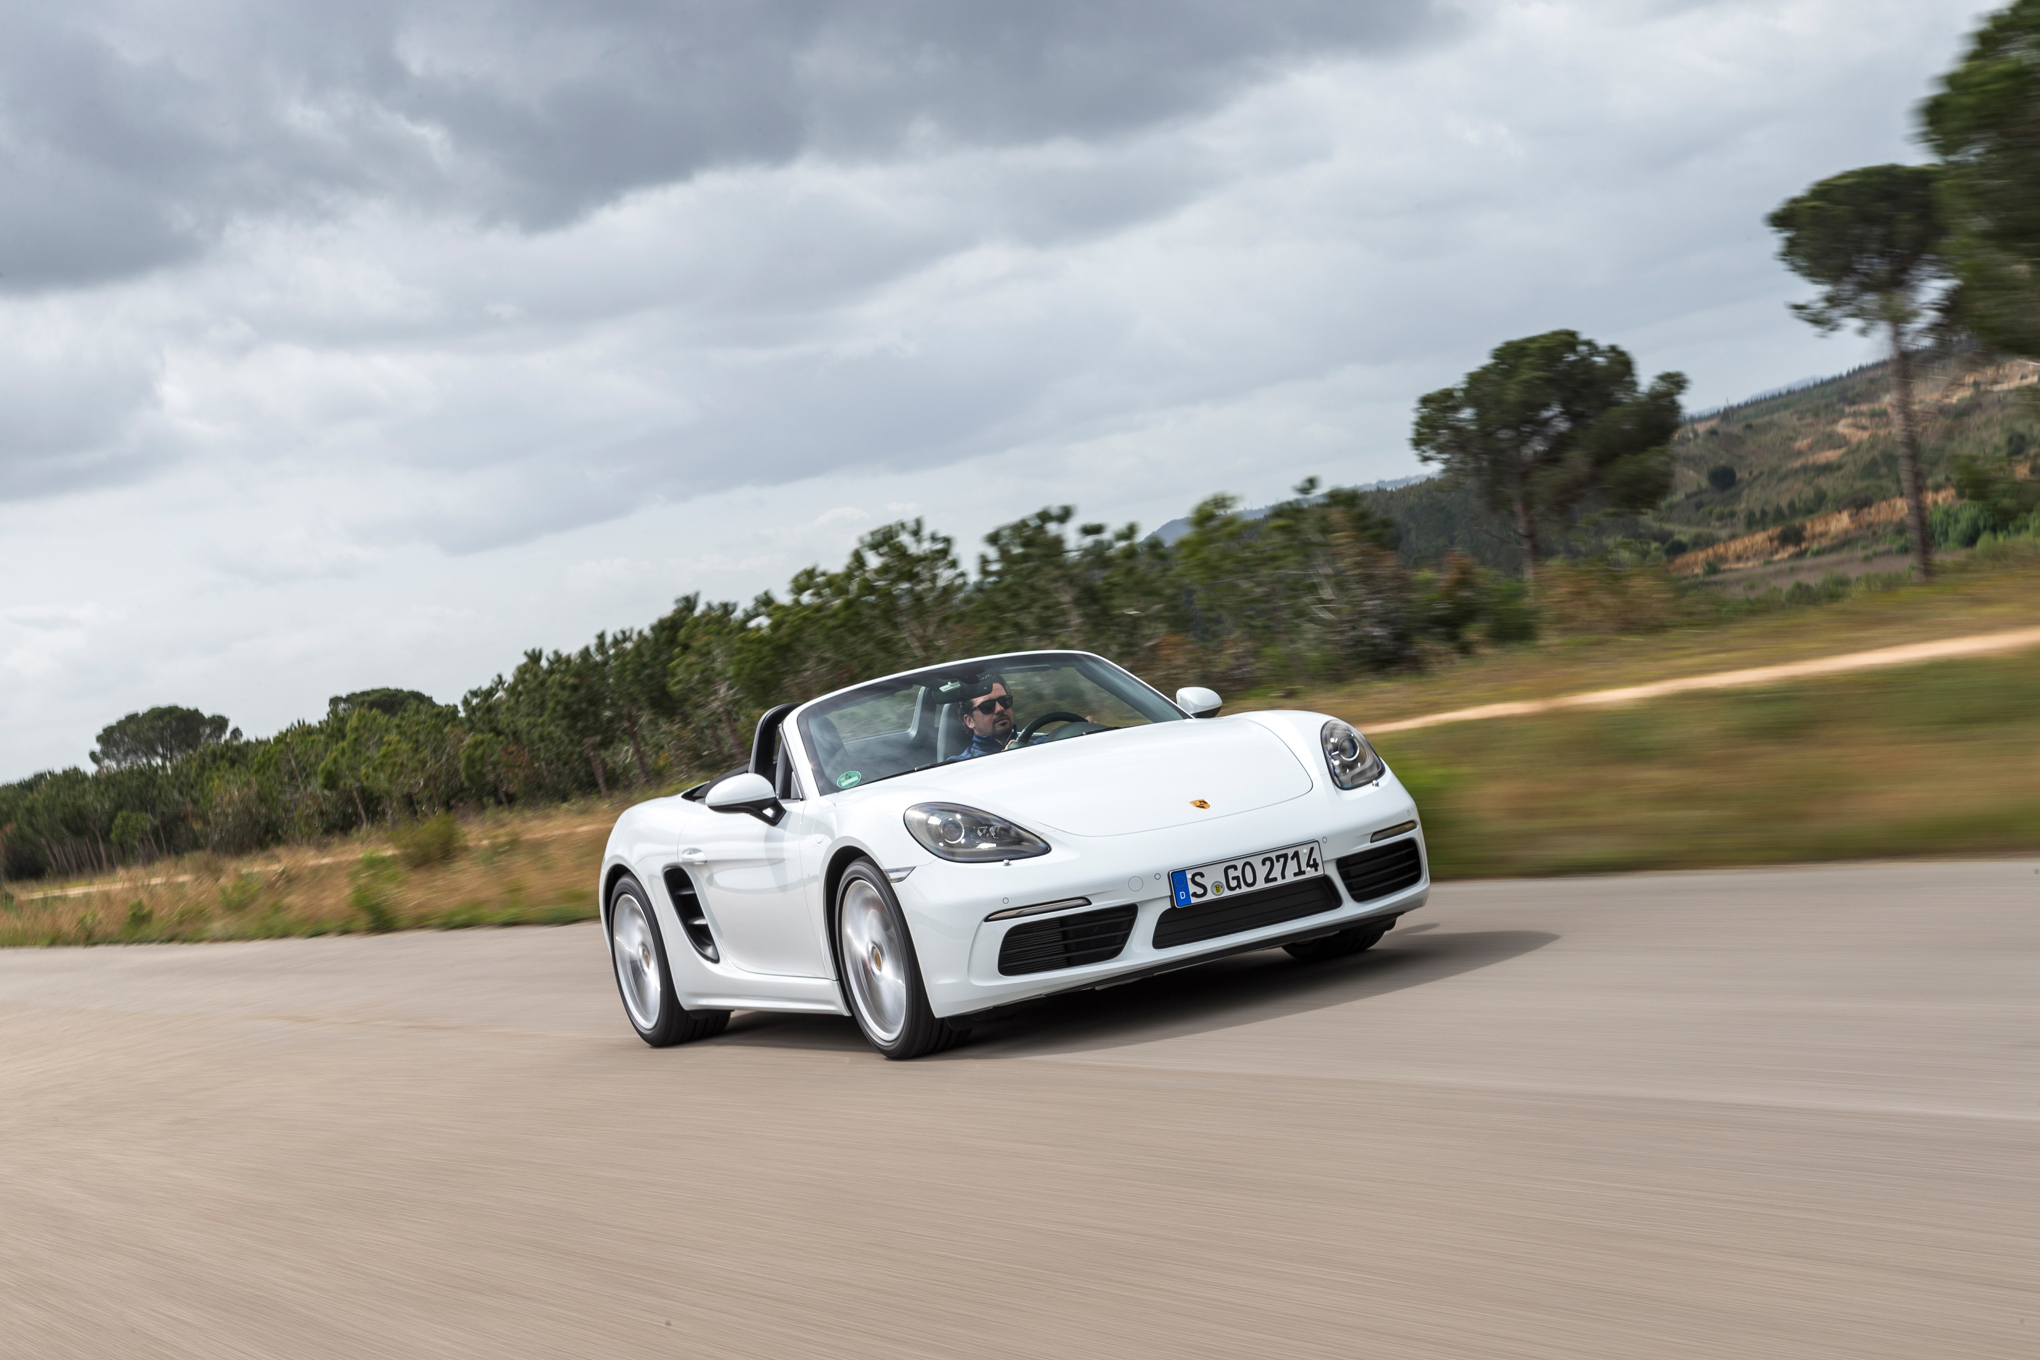 2017 Porsche Boxster S photo - 4